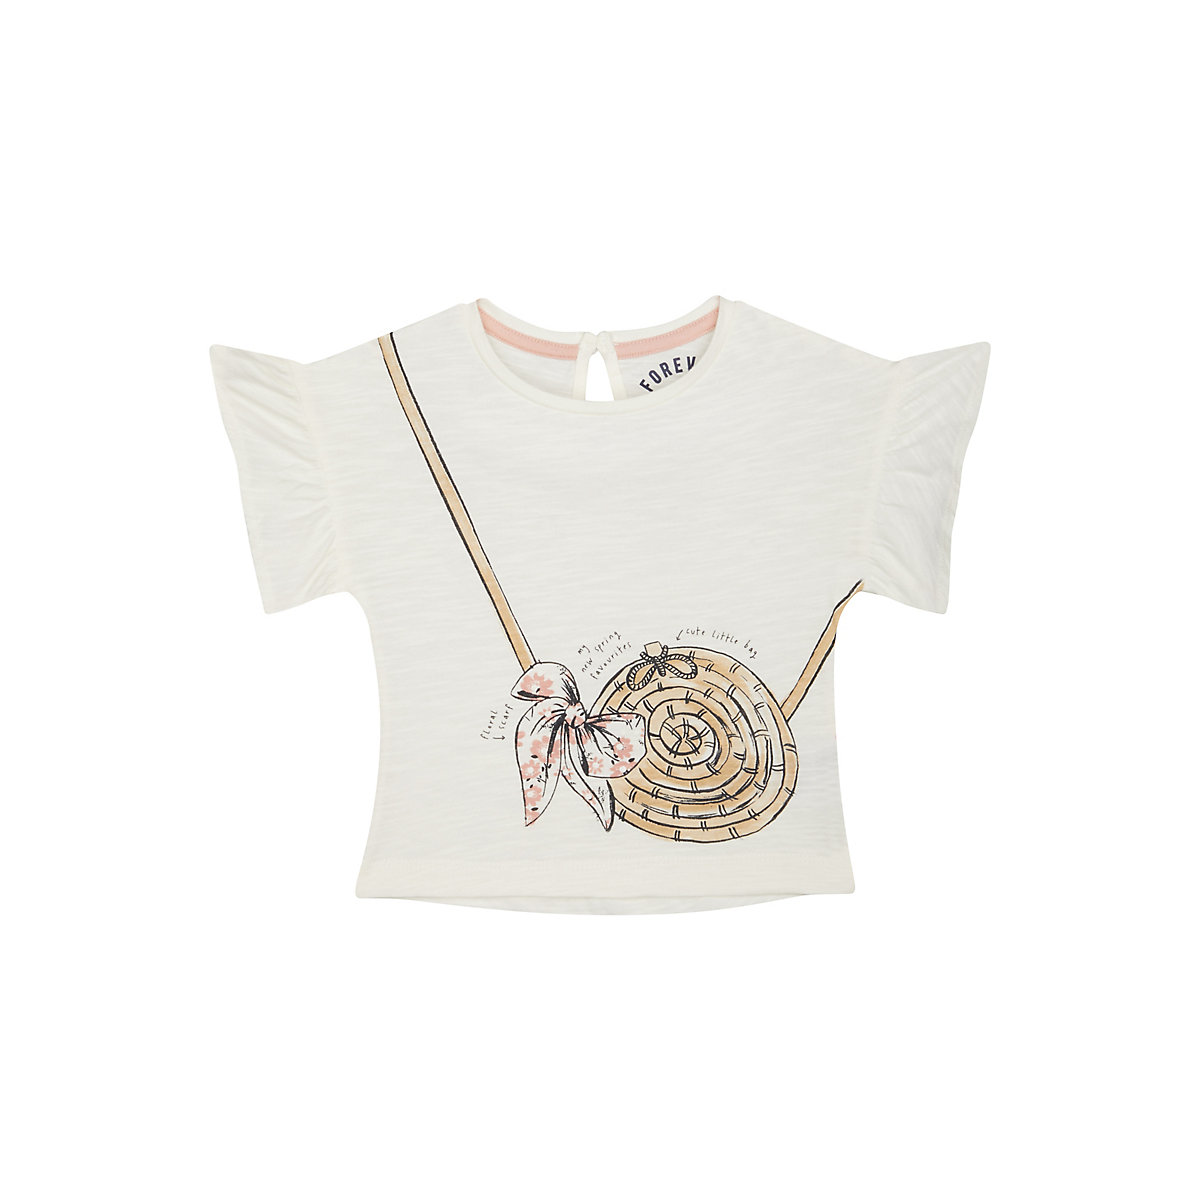 frilled handbag tee